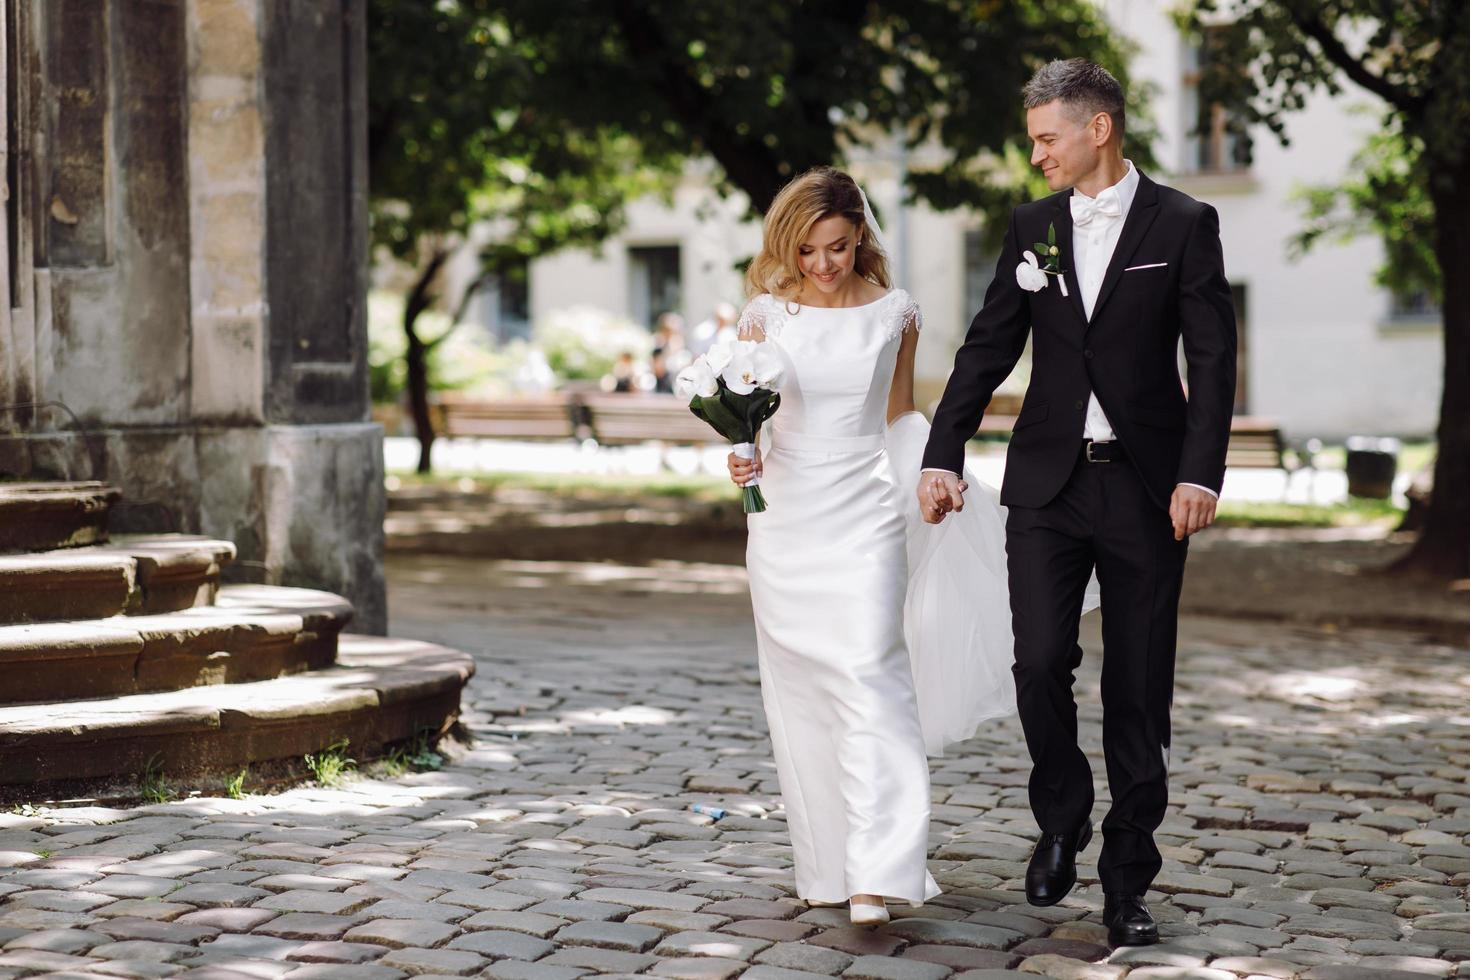 Groom holds bride's hand while walking on cobblestone path photo